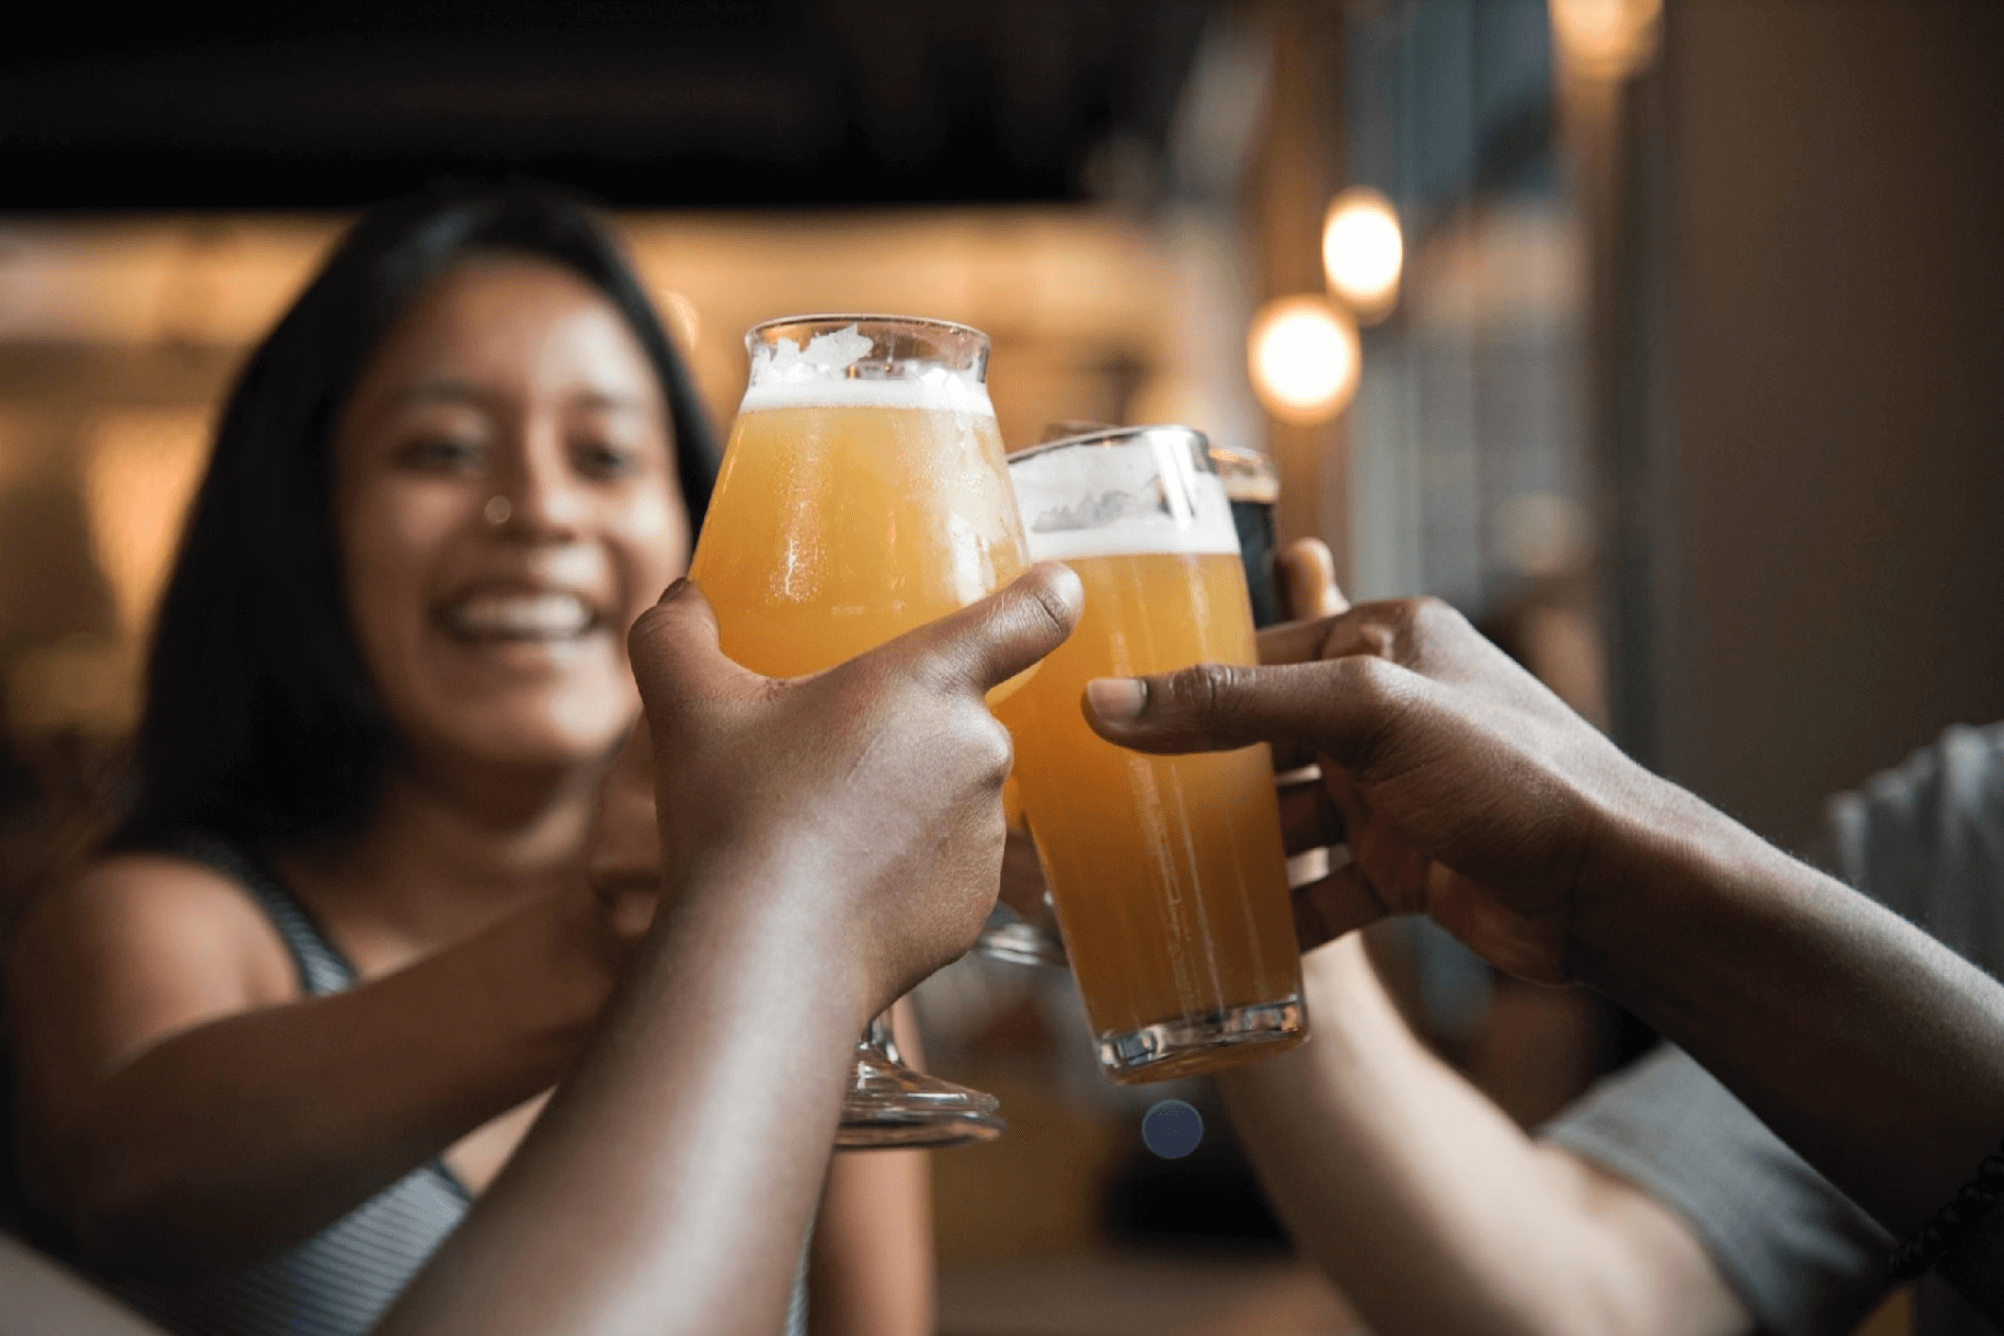 Brewing with your besties